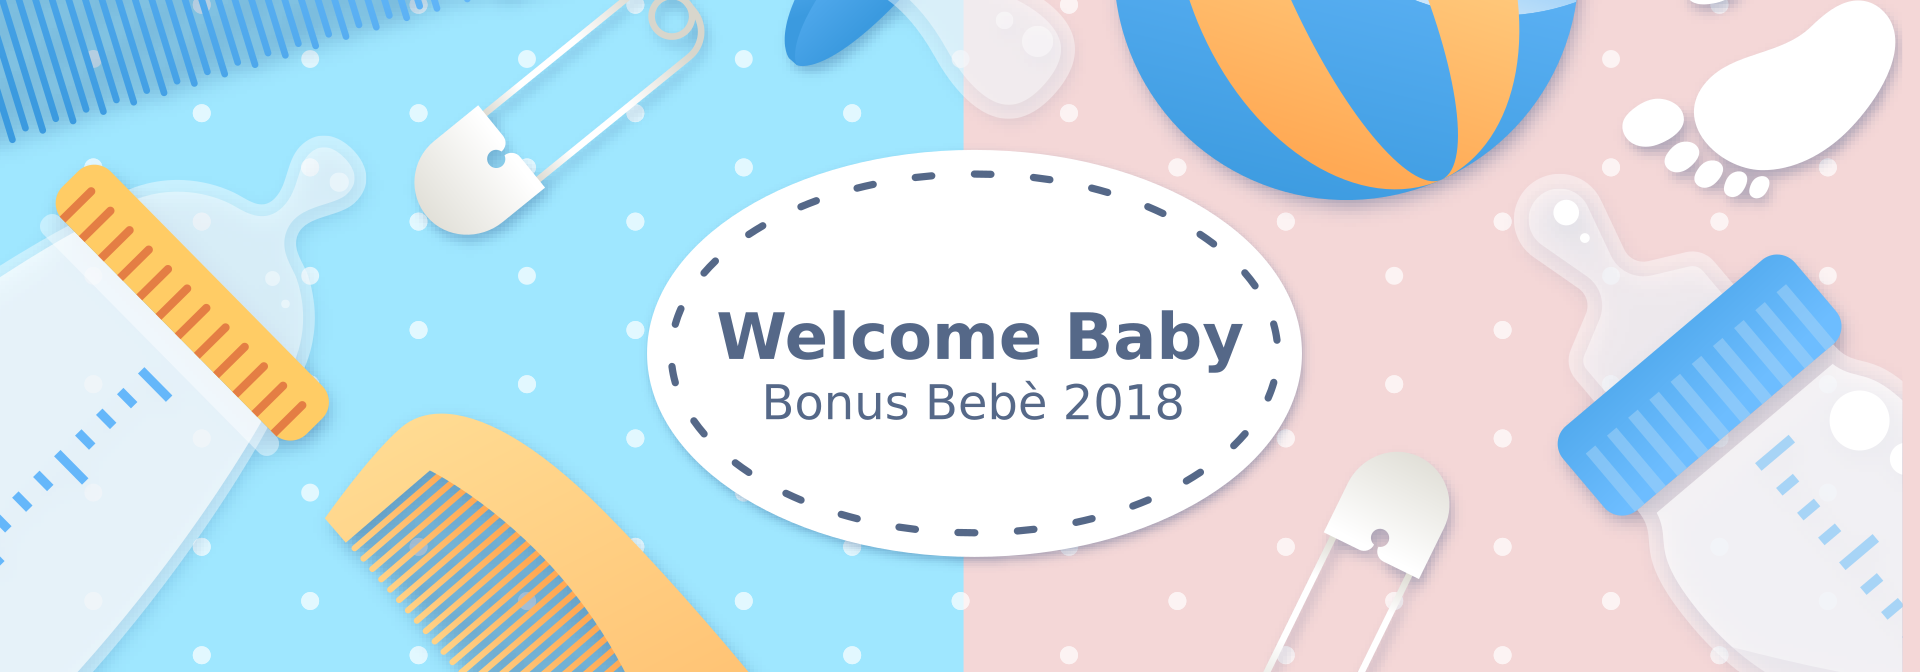 Banner - Welcome Baby 2018 - Blu e Rosa